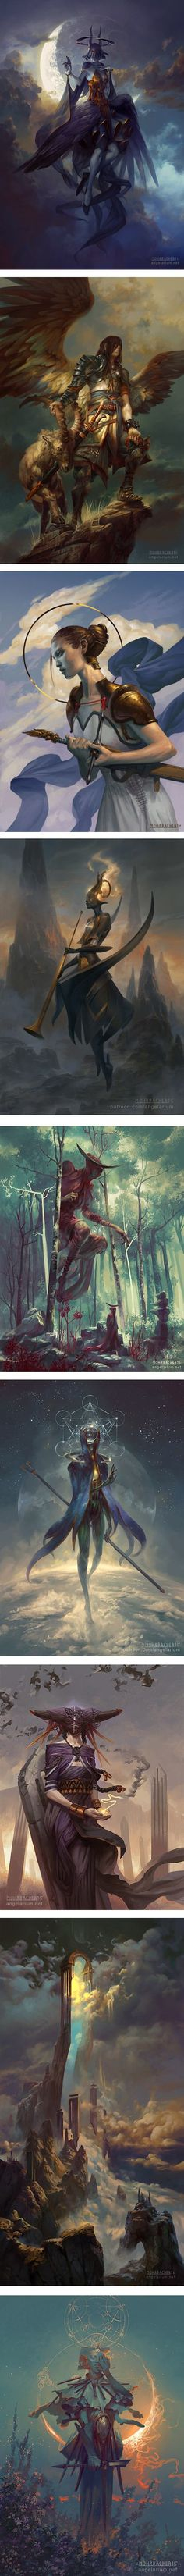 Peter Mohrbacher   Lines and Colors :: a blog about drawing, painting, illustration, comics, concept art and other visual arts